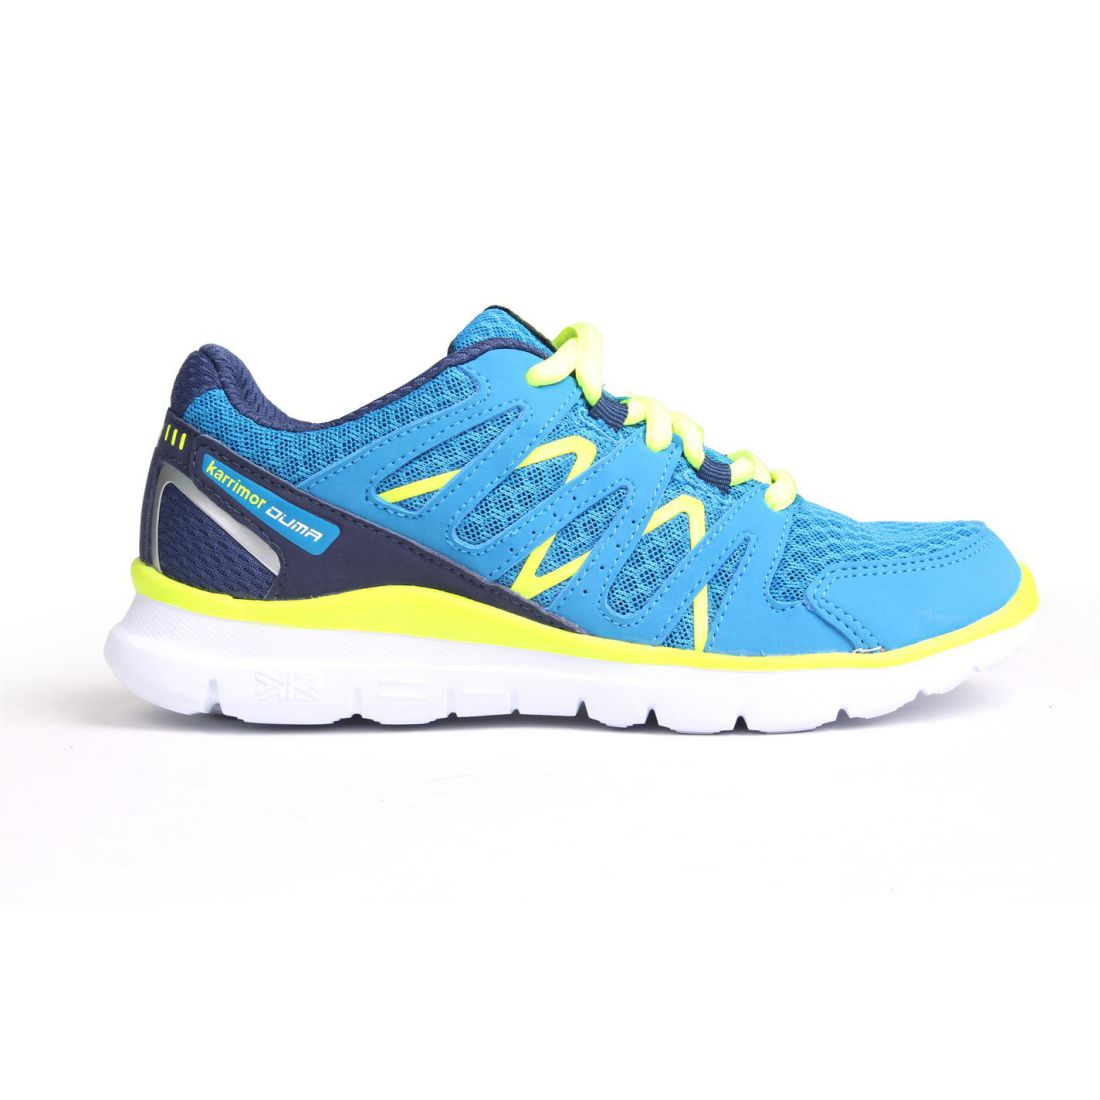 498fca8a5cd89 Karrimor Childrens Duma Running Trainers Boys Shoes Sports Mesh Footwear  Blue/navy UK 2 (34)